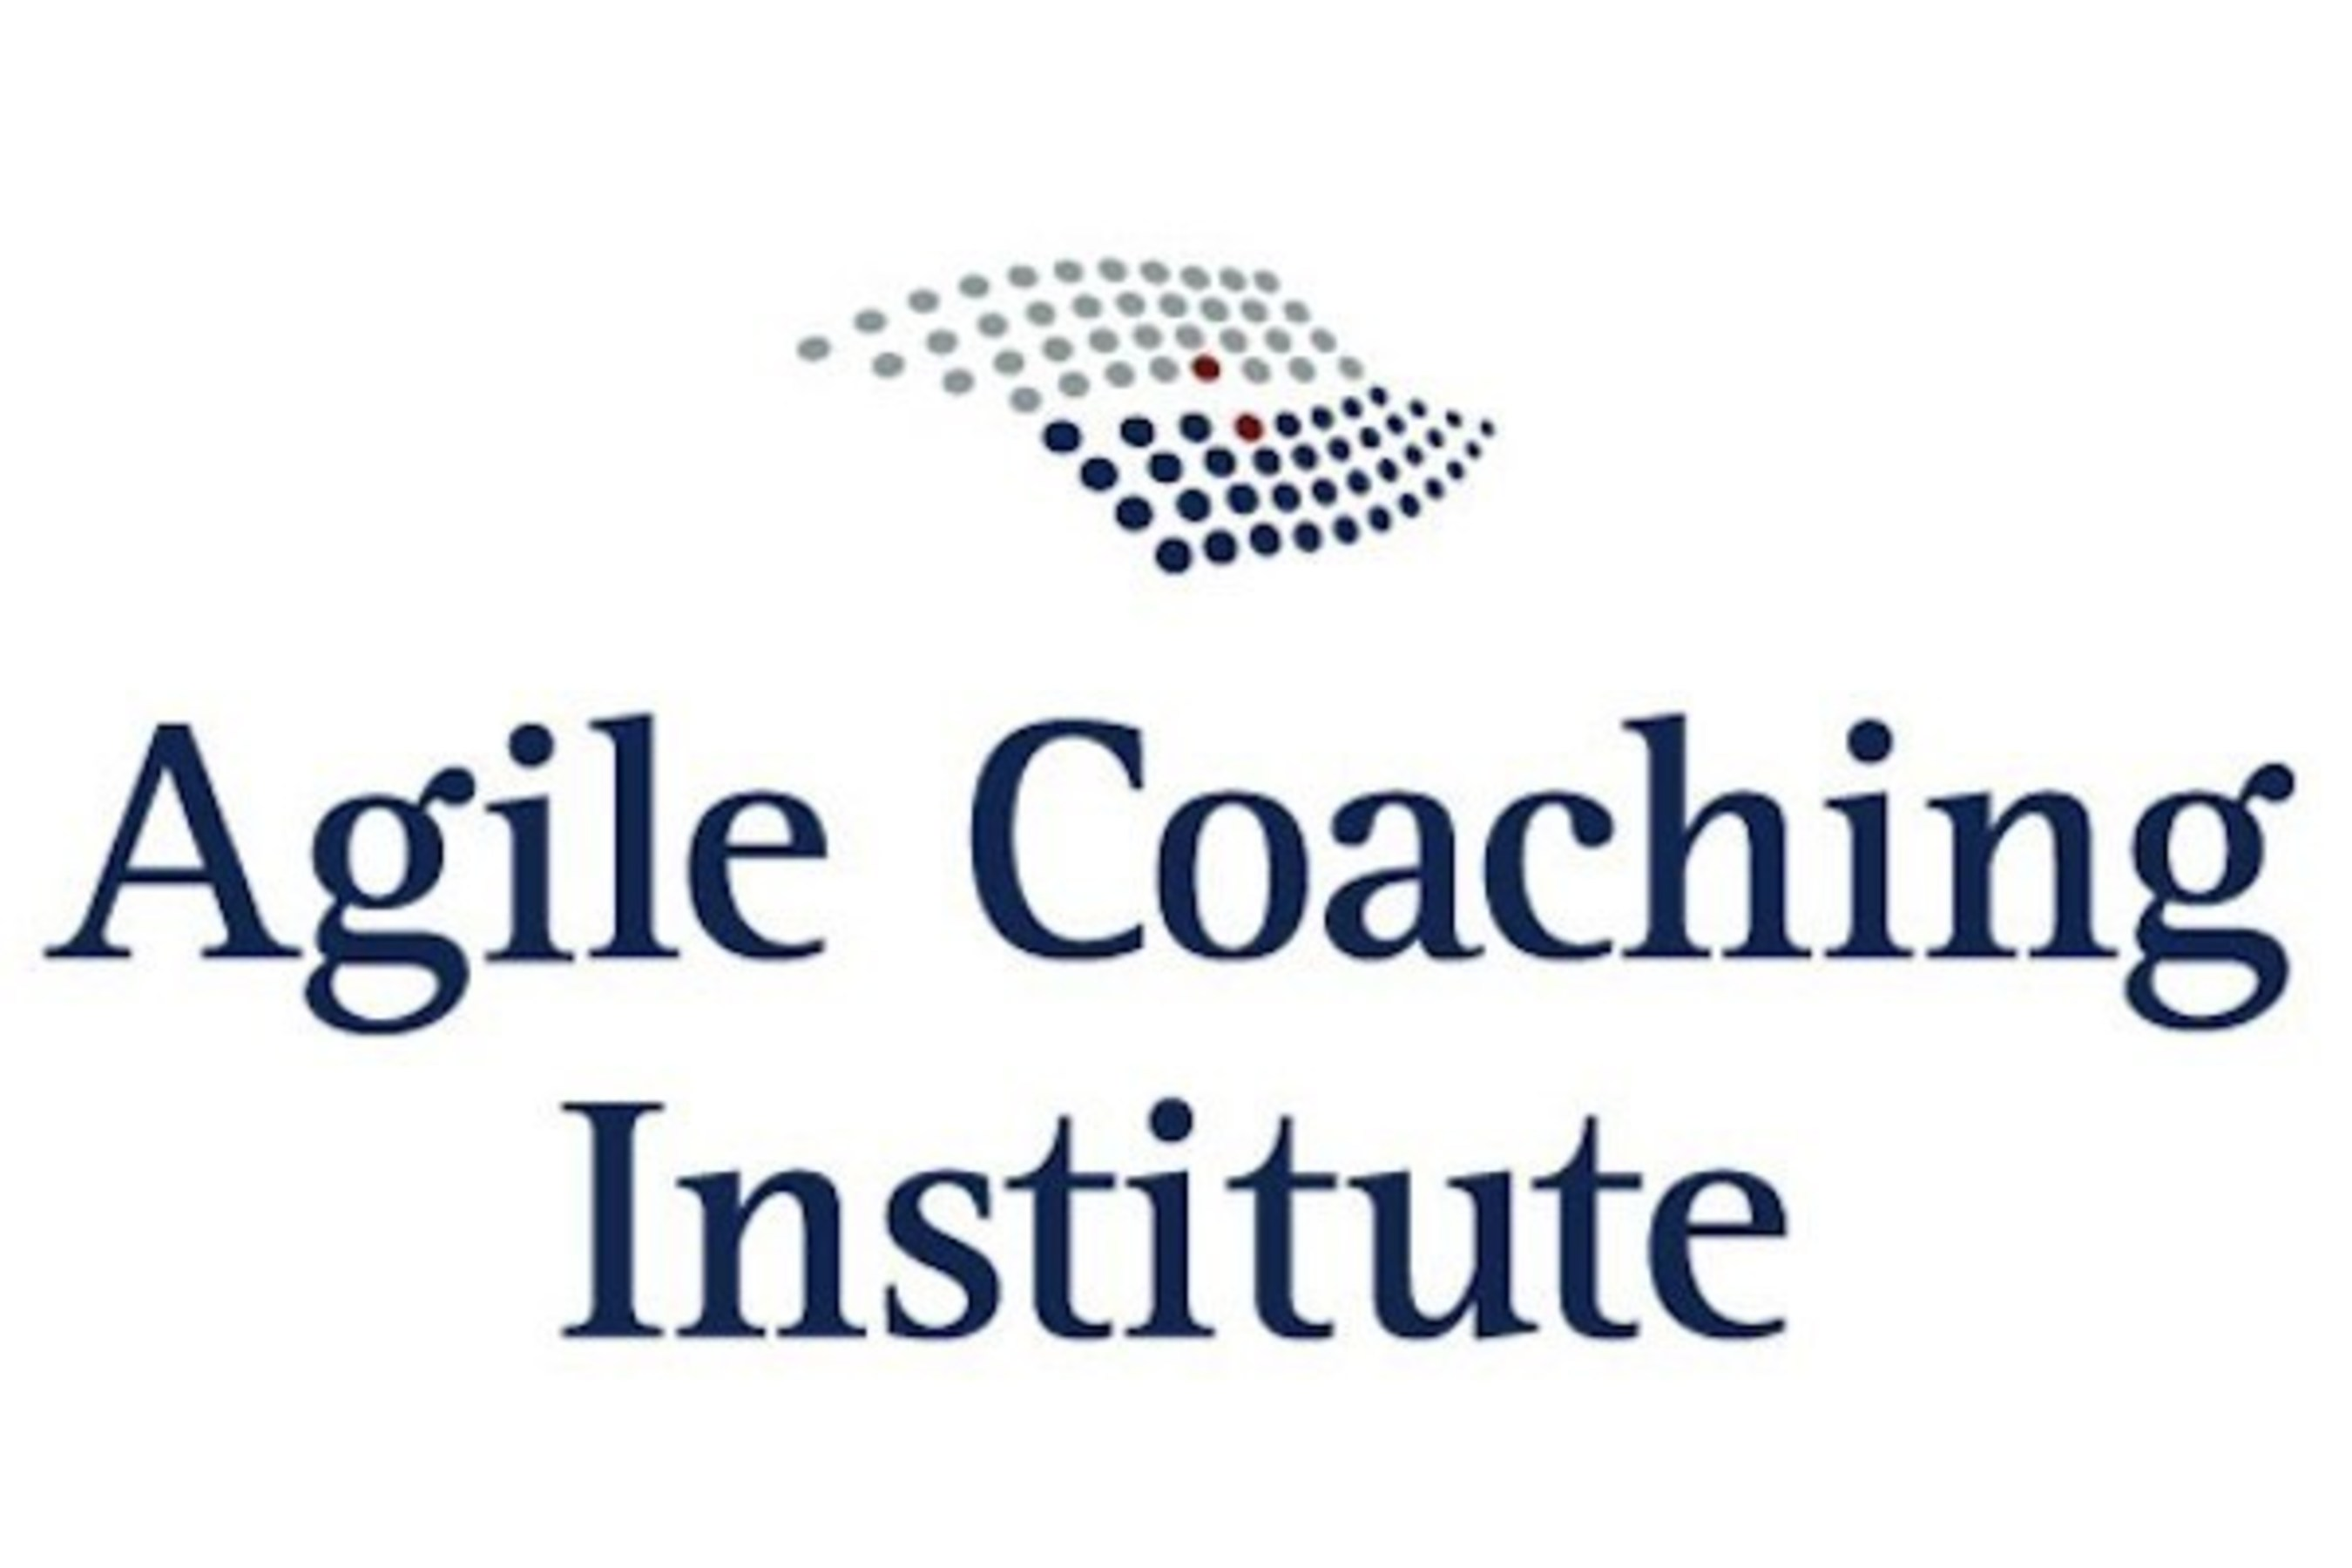 SolutionsIQ and the Agile Coaching Institute (ACI) Announce Partnership Agreement